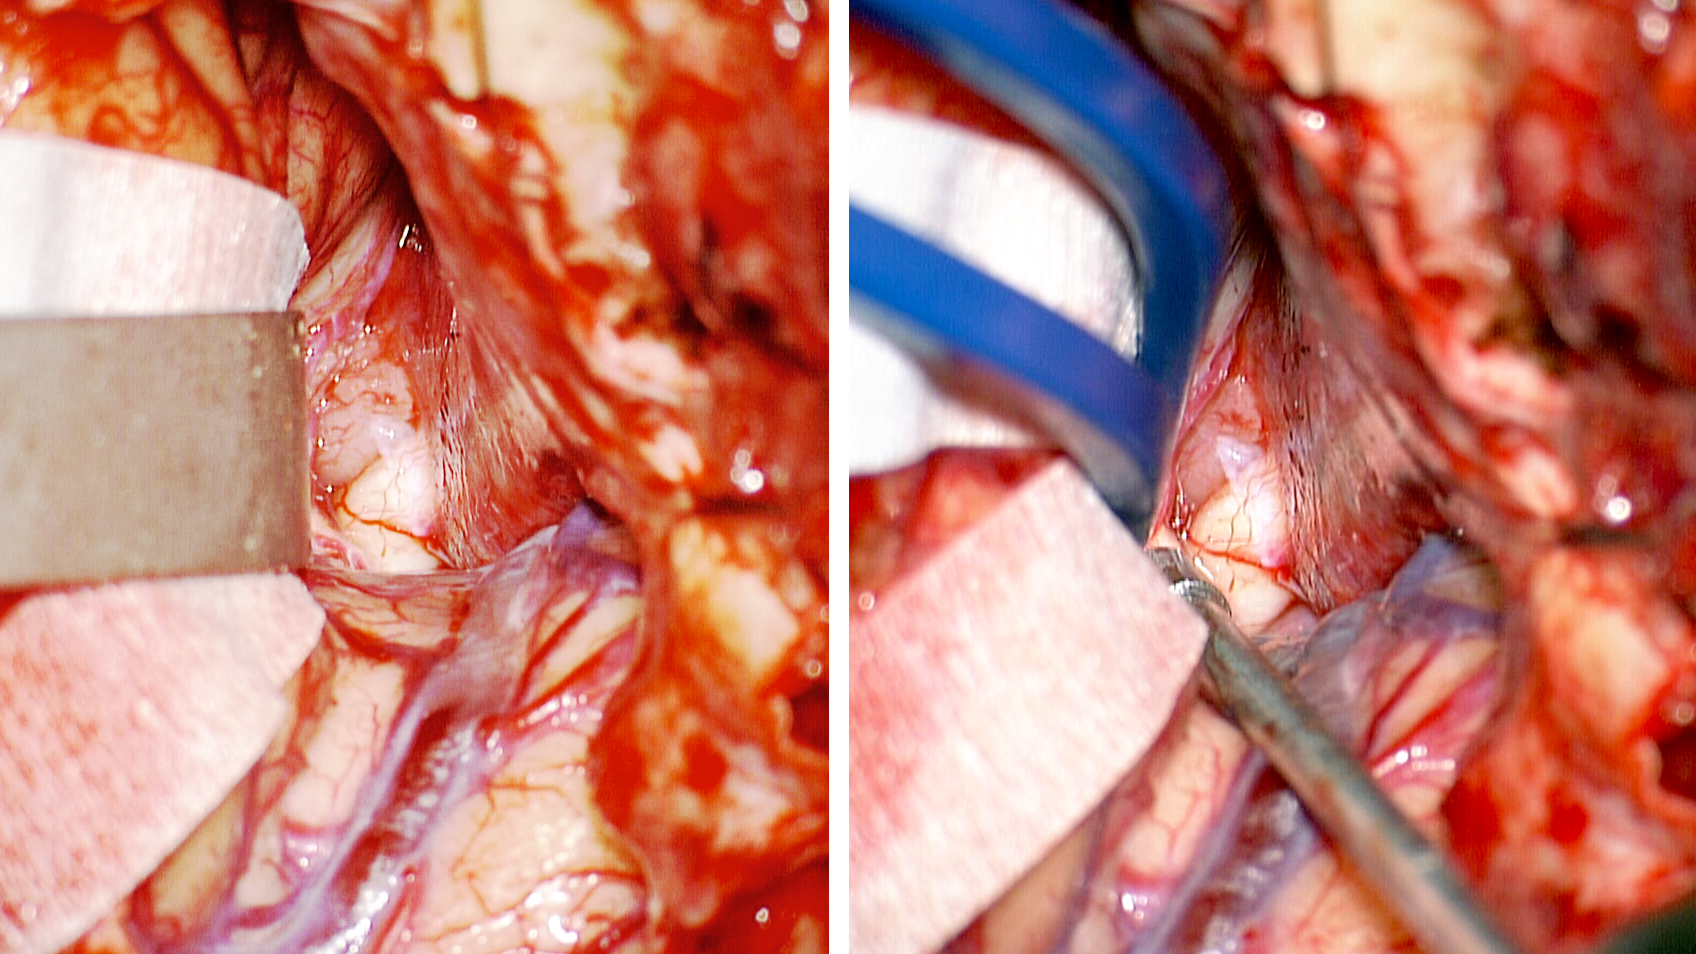 Figure 1: The use of a fixed retractor blade (left) and dynamic retraction (using bipolar forceps and suction device, right) for a subfrontal trajectory and exposure of the optic nerve is compared. Dynamic retraction places the brain under less tension due to a more distributed retraction pressure.